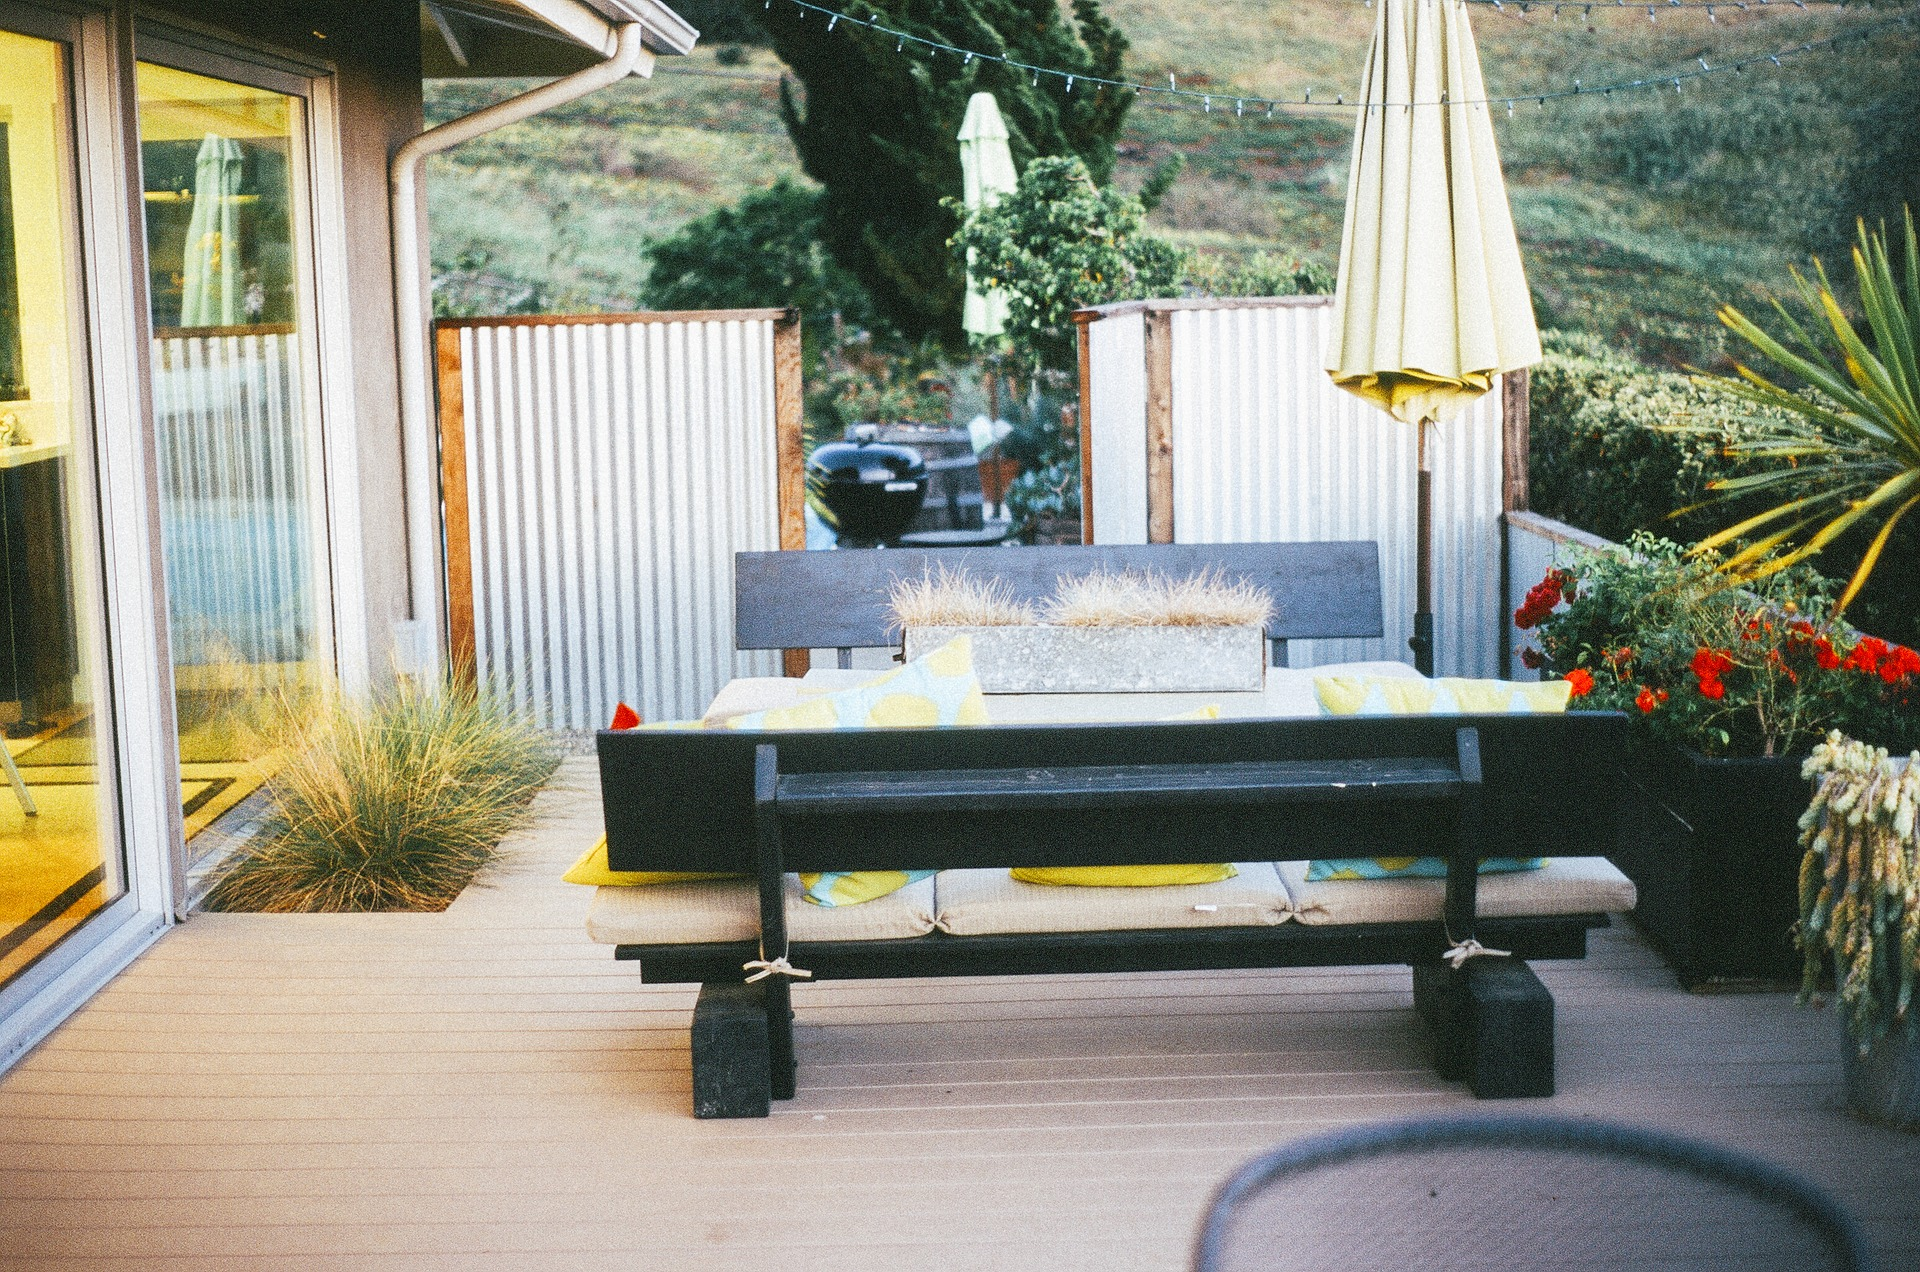 5 Advantages of Installing a Retractable Awning at Your Home